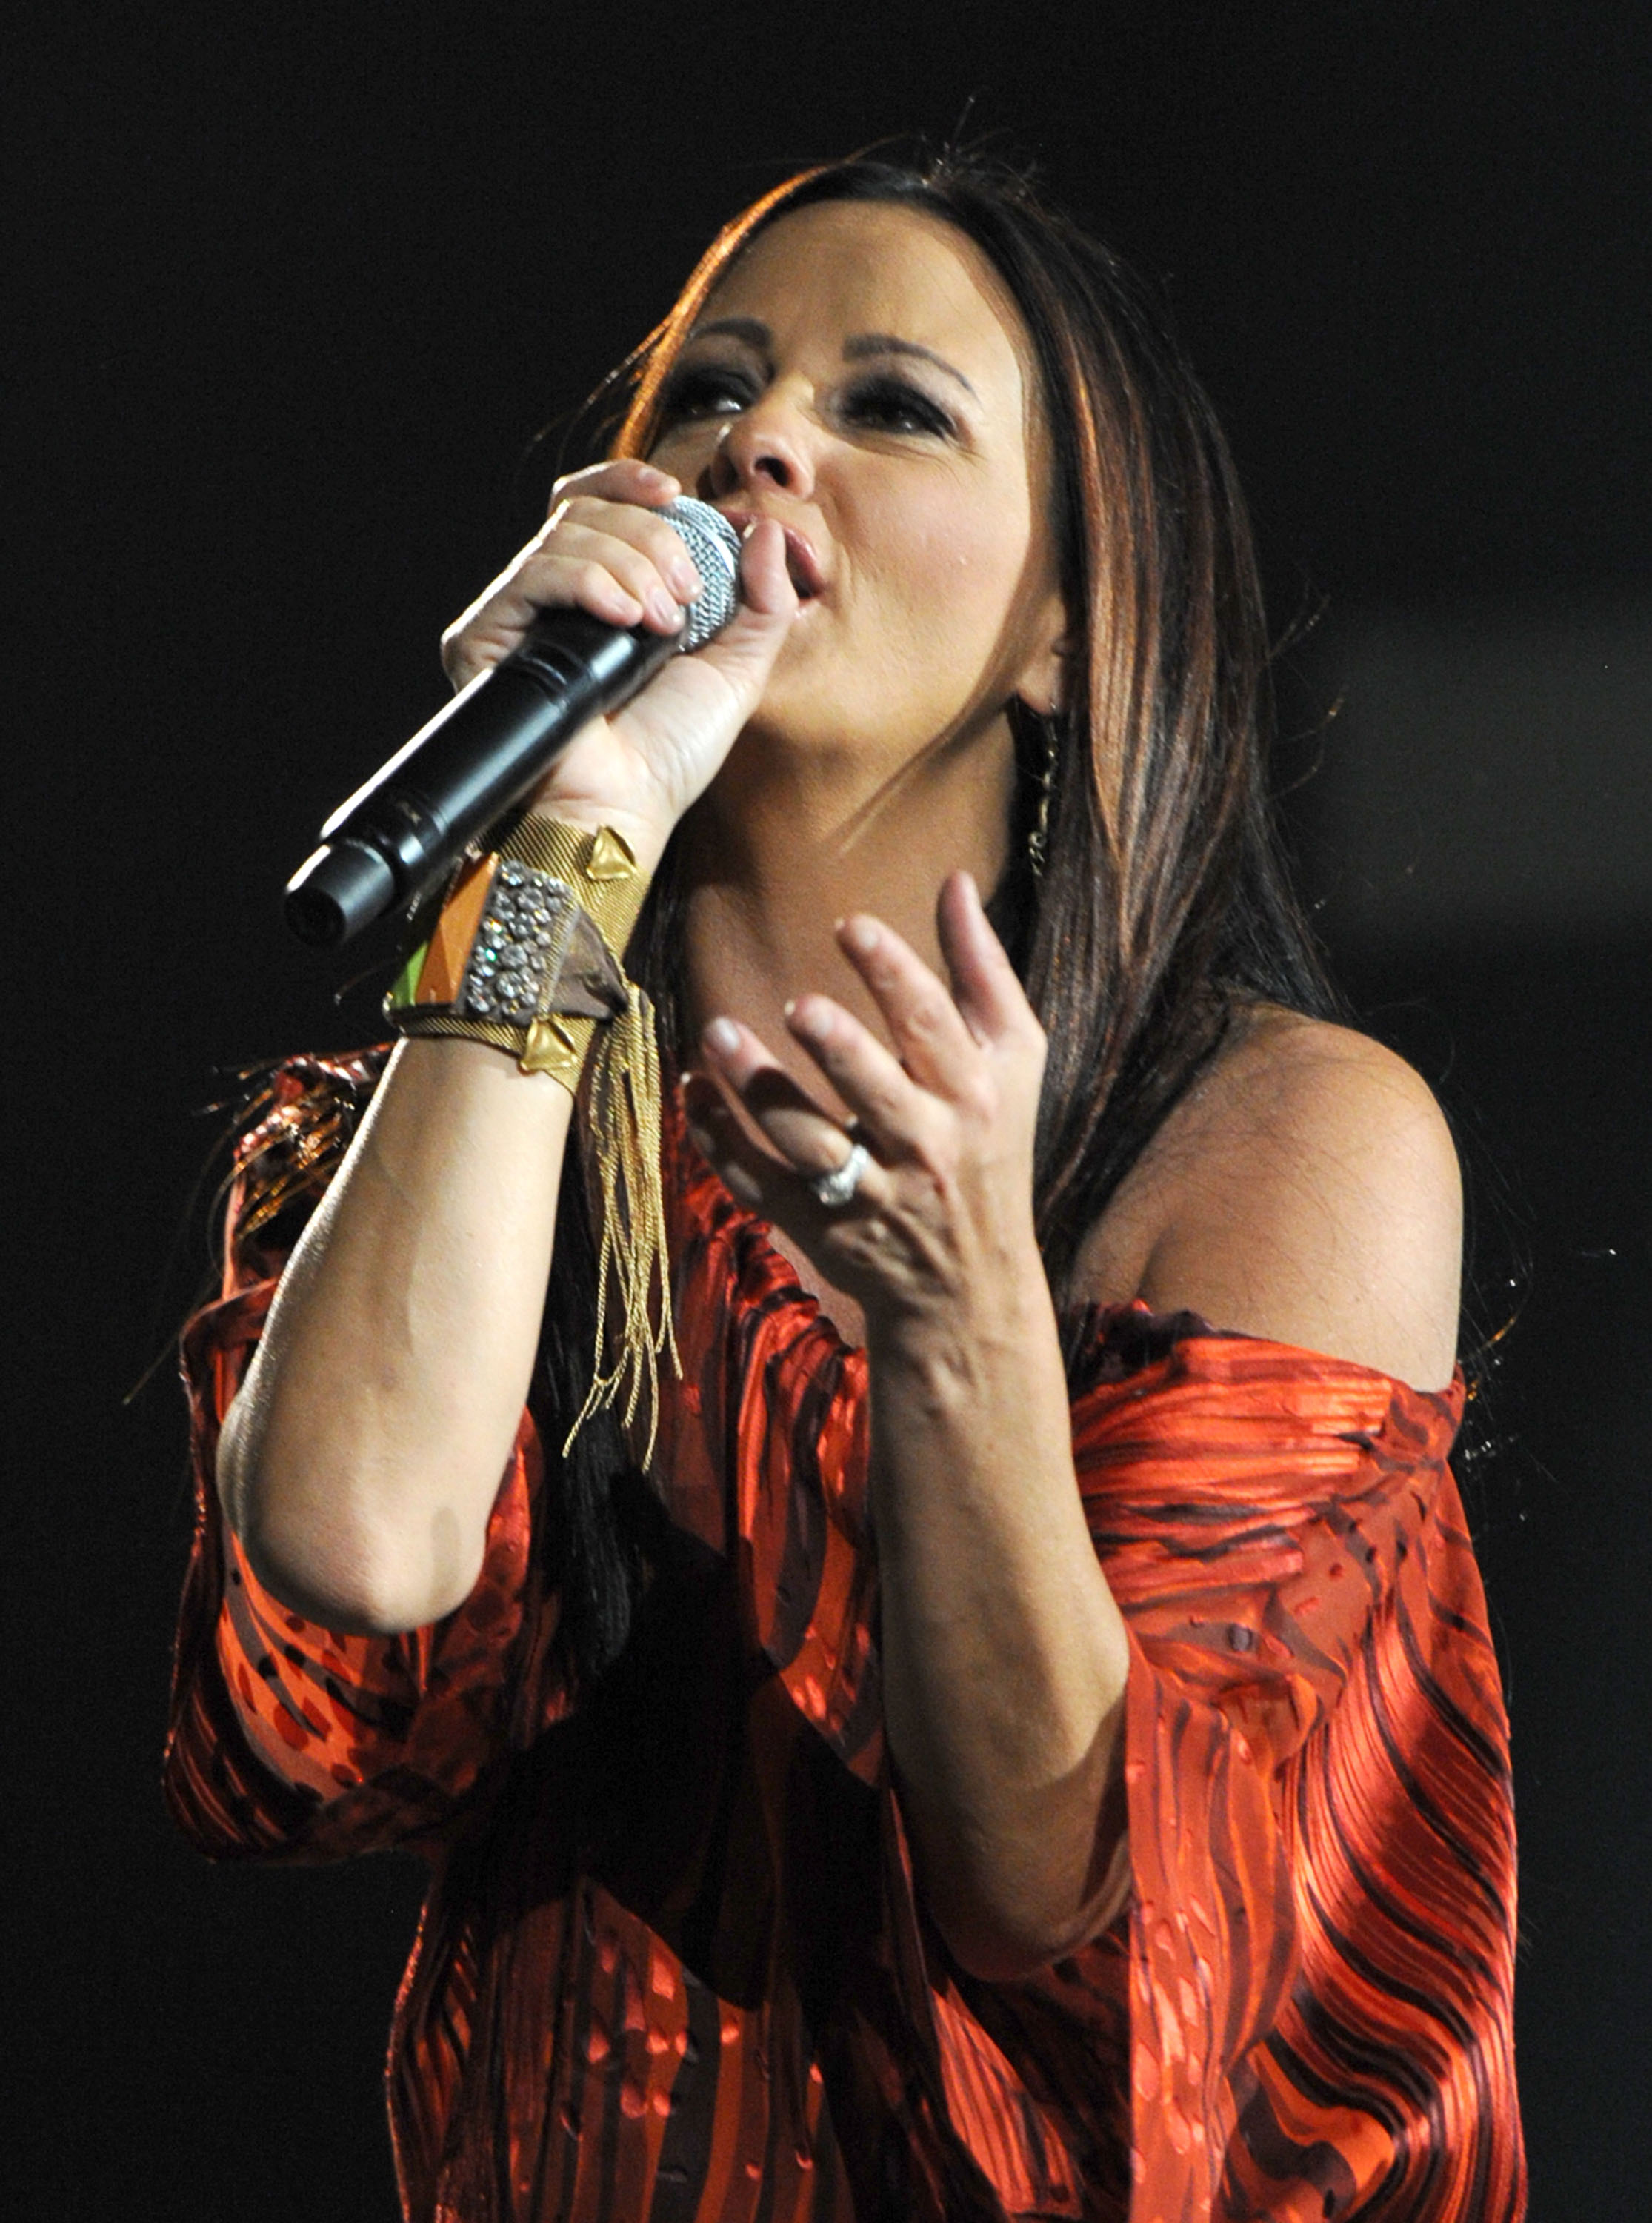 LAS VEGAS, NV - APRIL 01: Singer Sara Evans performs onstage during the 47th Annual Academy Of Country Music Awards held at the MGM Grand Garden Arena on April 1, 2012 in Las Vegas, Nevada. (Photo by Kevin Winter/ACMA2012/Getty Images for ACM)